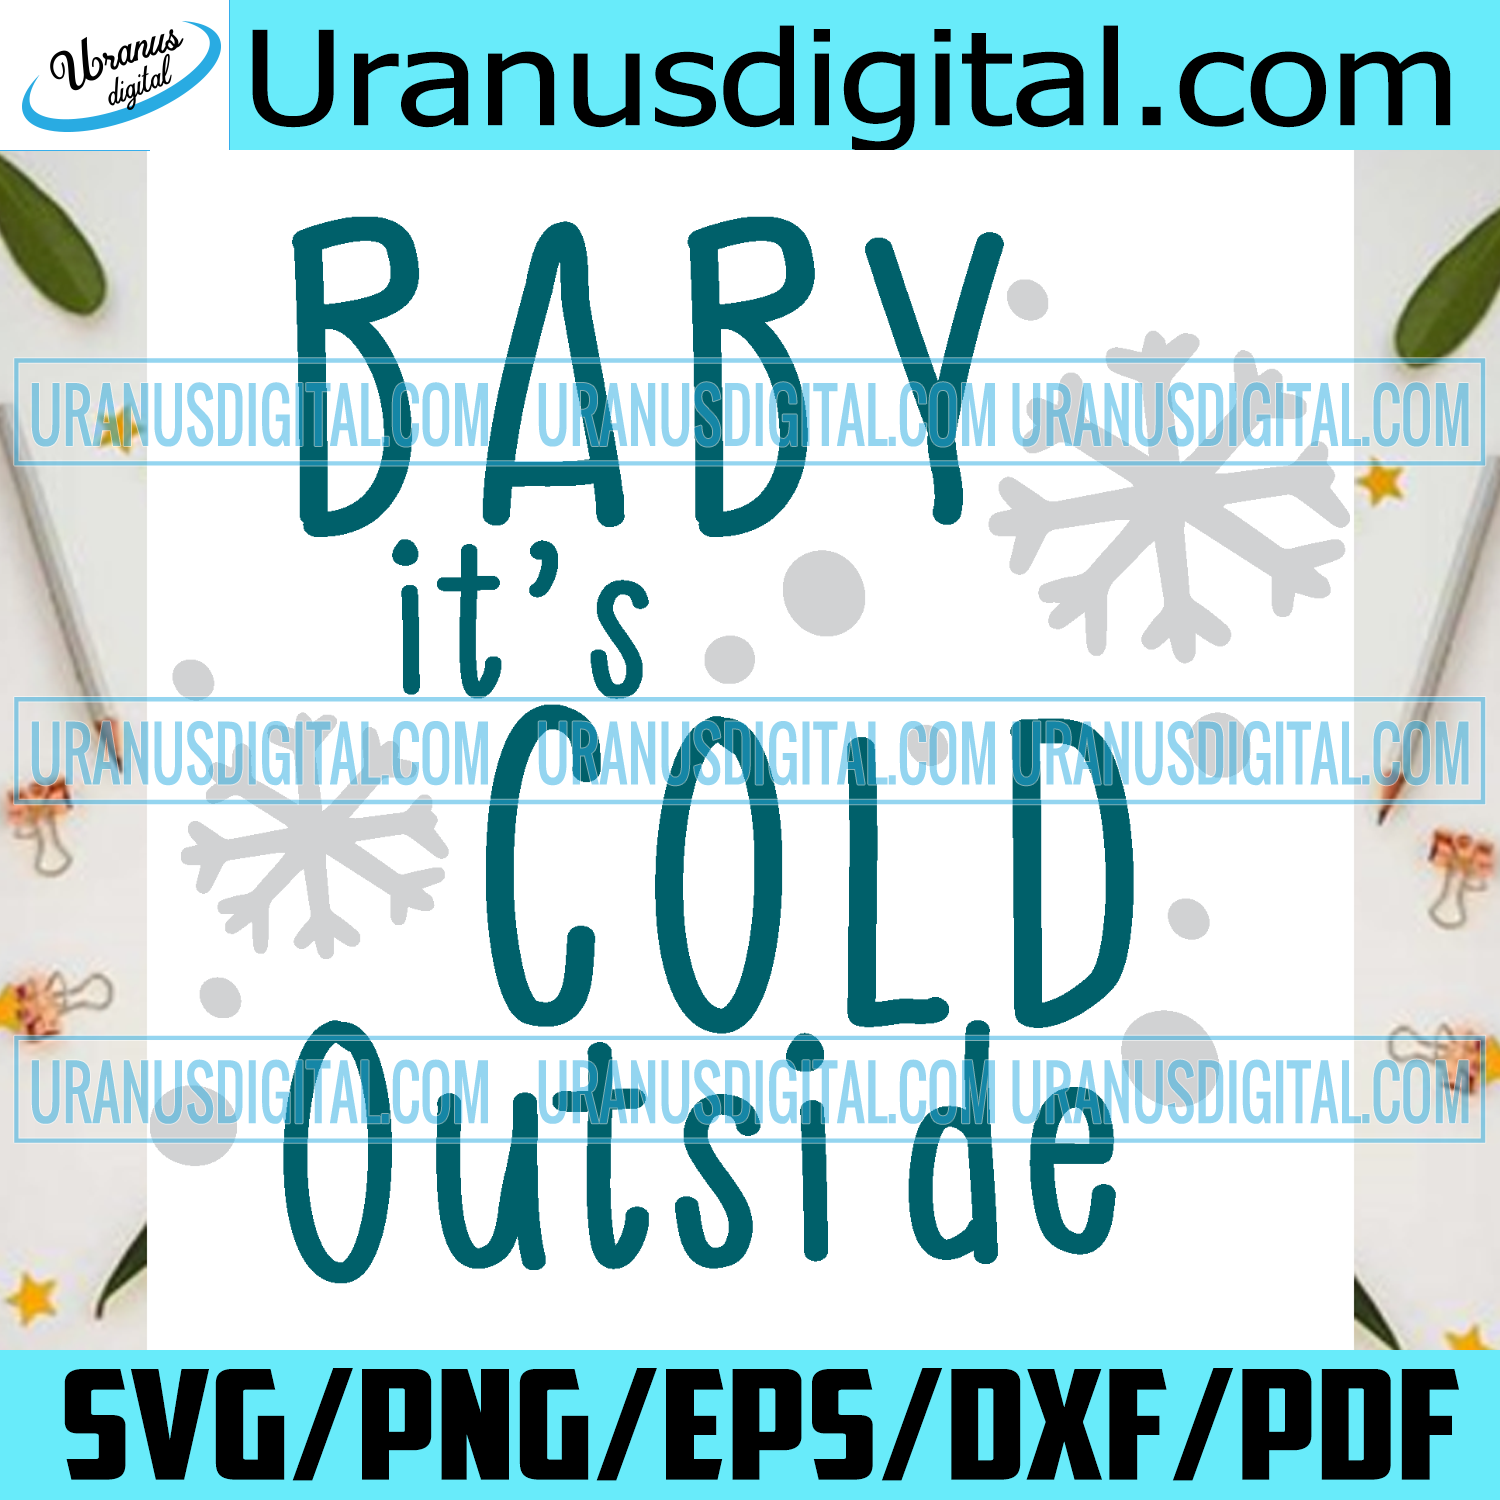 Baby Its Cold Outside, Christmas Png, Christmas Snowflake Png, Christmas Gifts, Merry Christmas, Christmas Holiday, Christmas Party, Funny Christmas, Xmas Gift, Christmas Gift Ideas, Merry Christmas Png